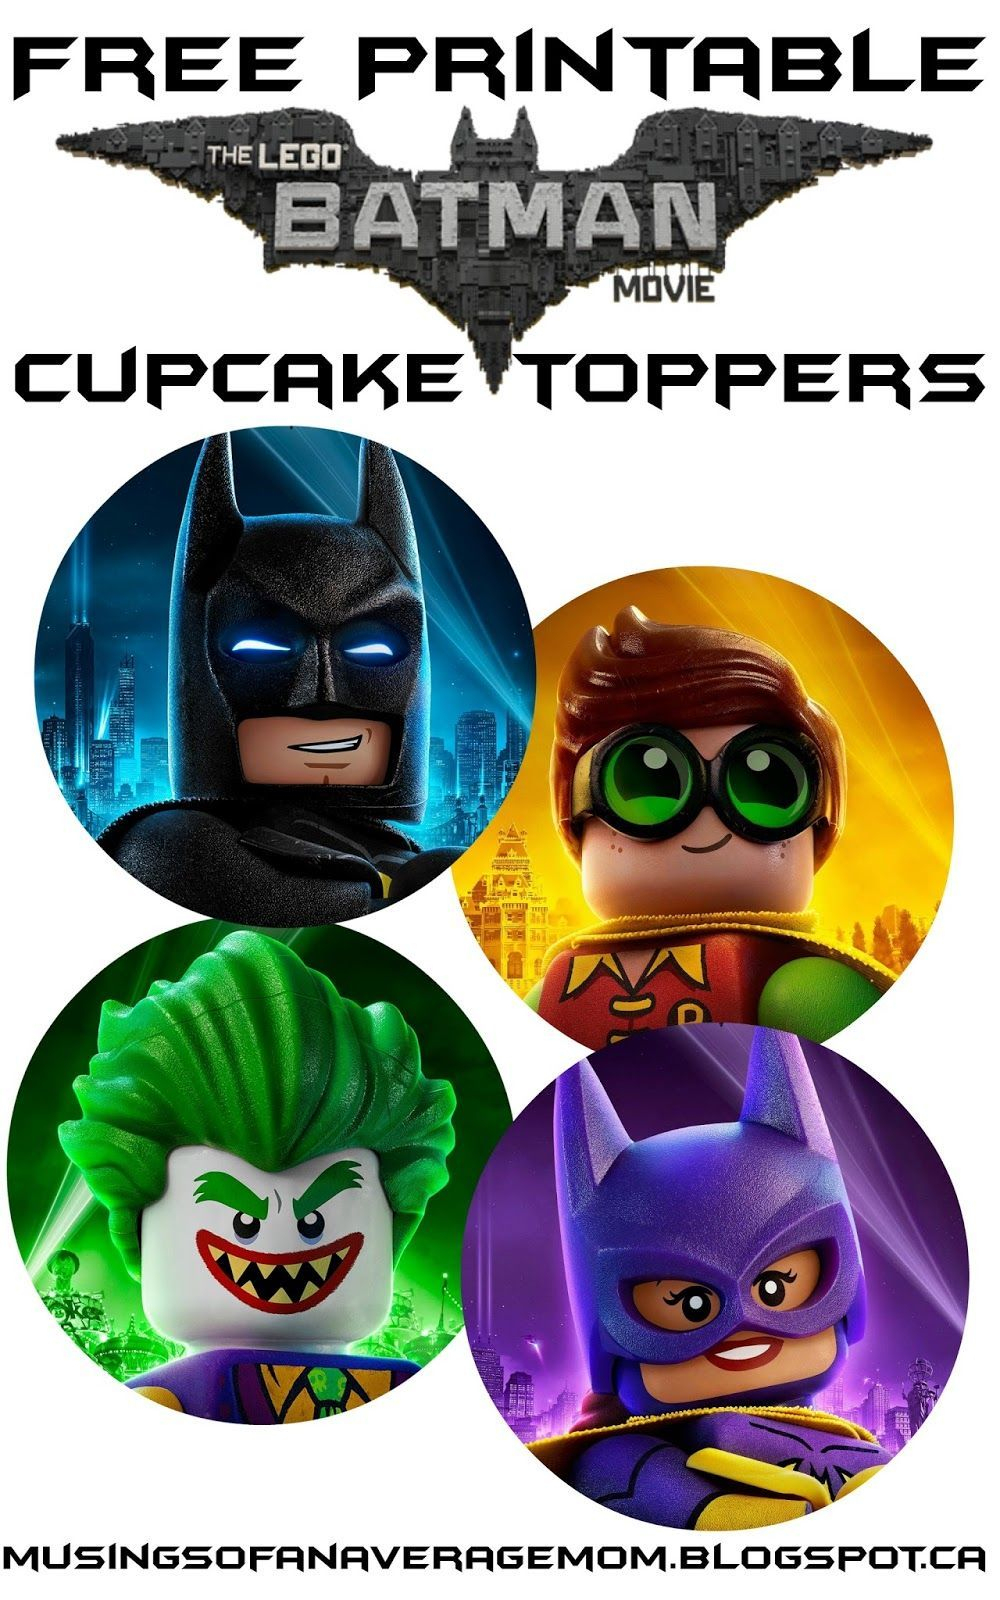 Free Lego Batman Cupcake Toppers | We Found These Great Pins - Free Printable Lego Batman